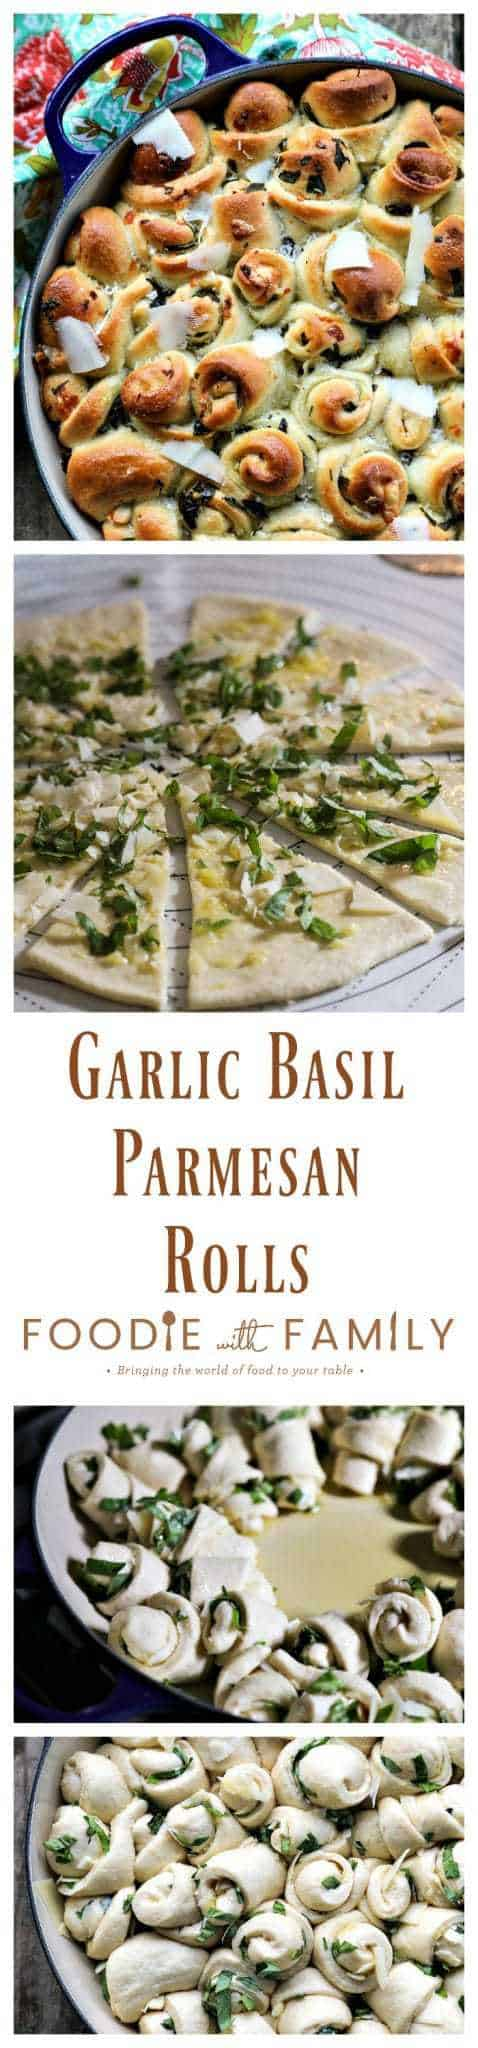 Garlic Basil Parmesan Rolls are my idea of a perfect bread. Perfect bread dough brushed with garlic infused olive oil and rolled around chopped garlic, fresh basil, and flakes of creamy, nutty Parmesan cheese then baked up to a beautiful, golden brown, tender-yet-chewy work of art.